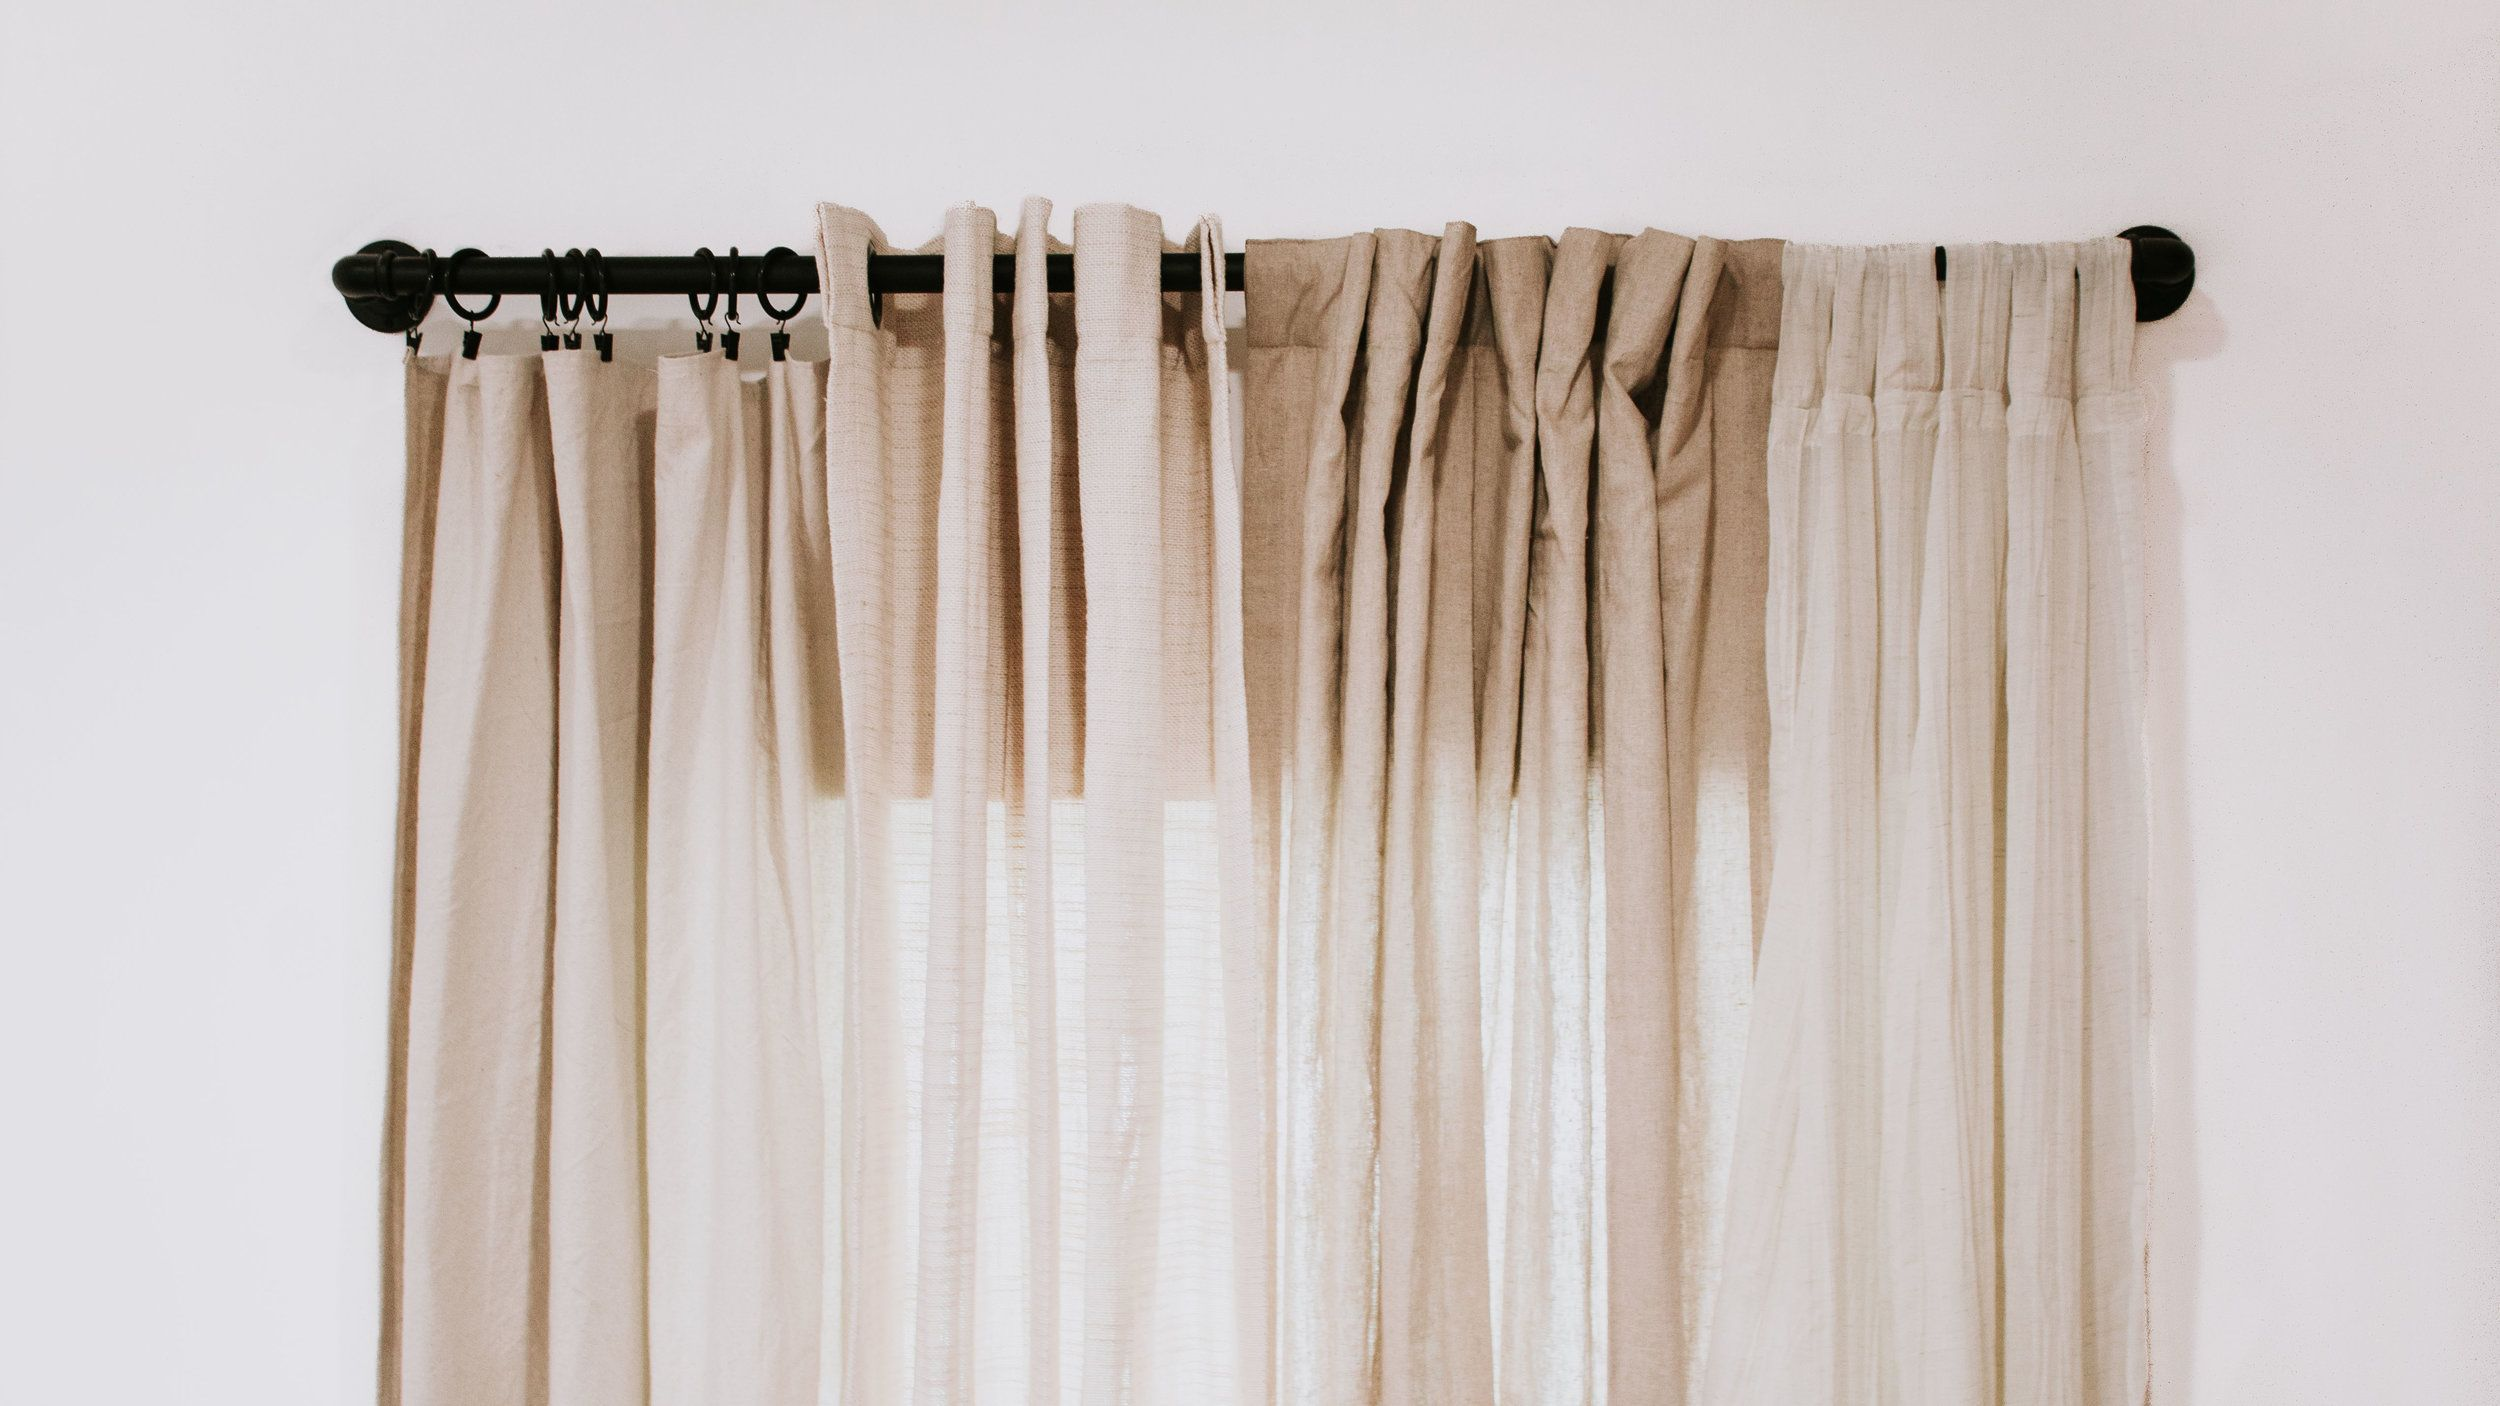 Curtain Quiz Can You Name These Curtain Styles With Images